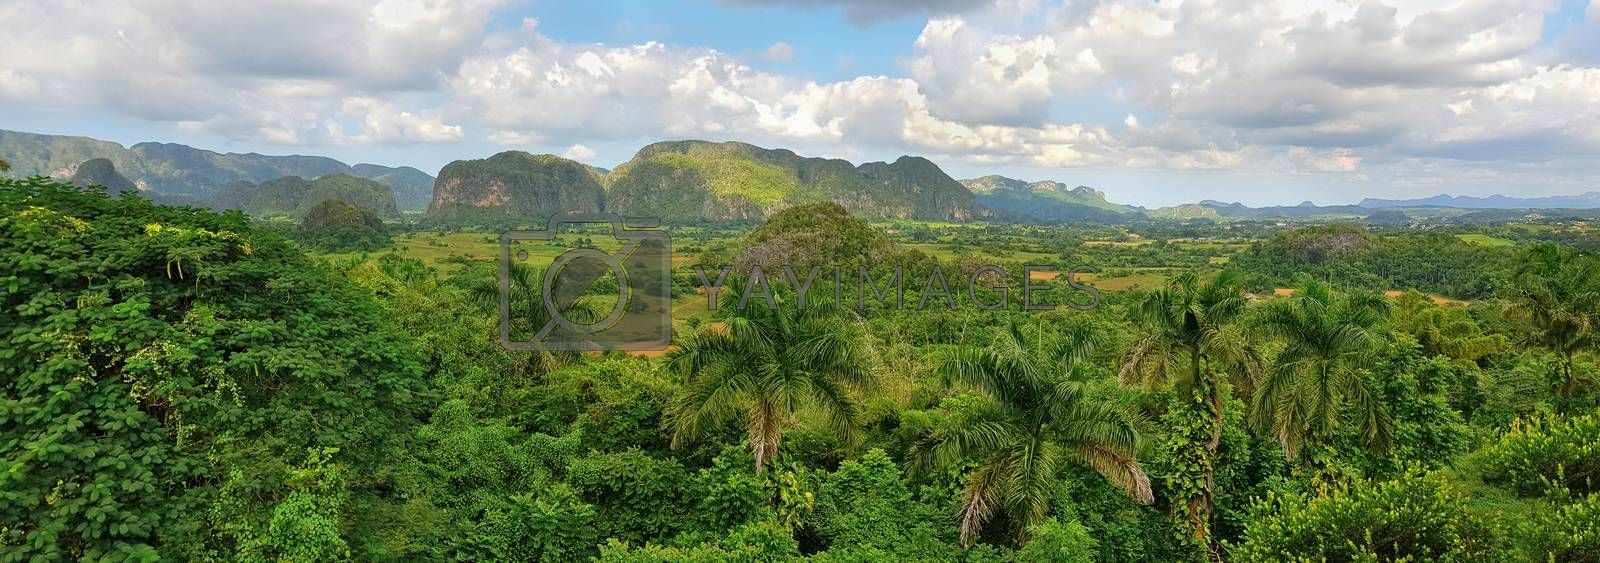 Panoramic view of green rain forest near Vinales, Cuba.